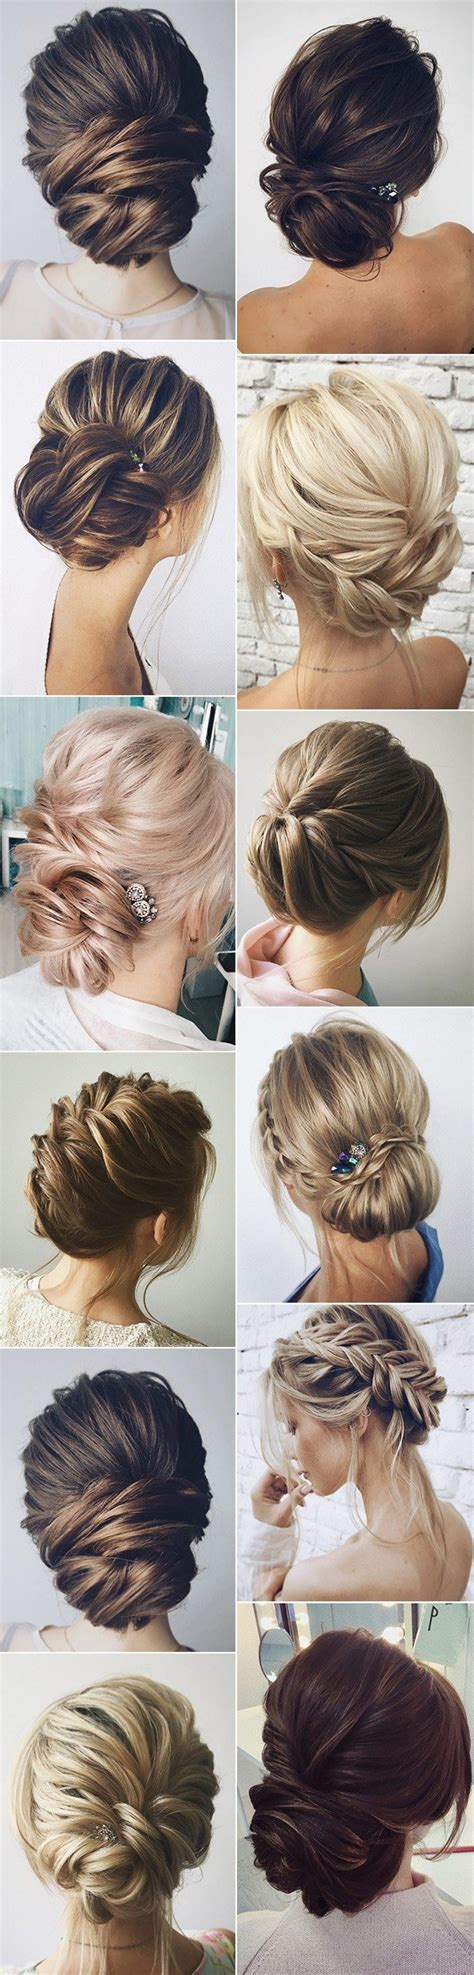 Wedding Updo Hairstyles For Hair by Bridal Updos Wedding Hairstyles